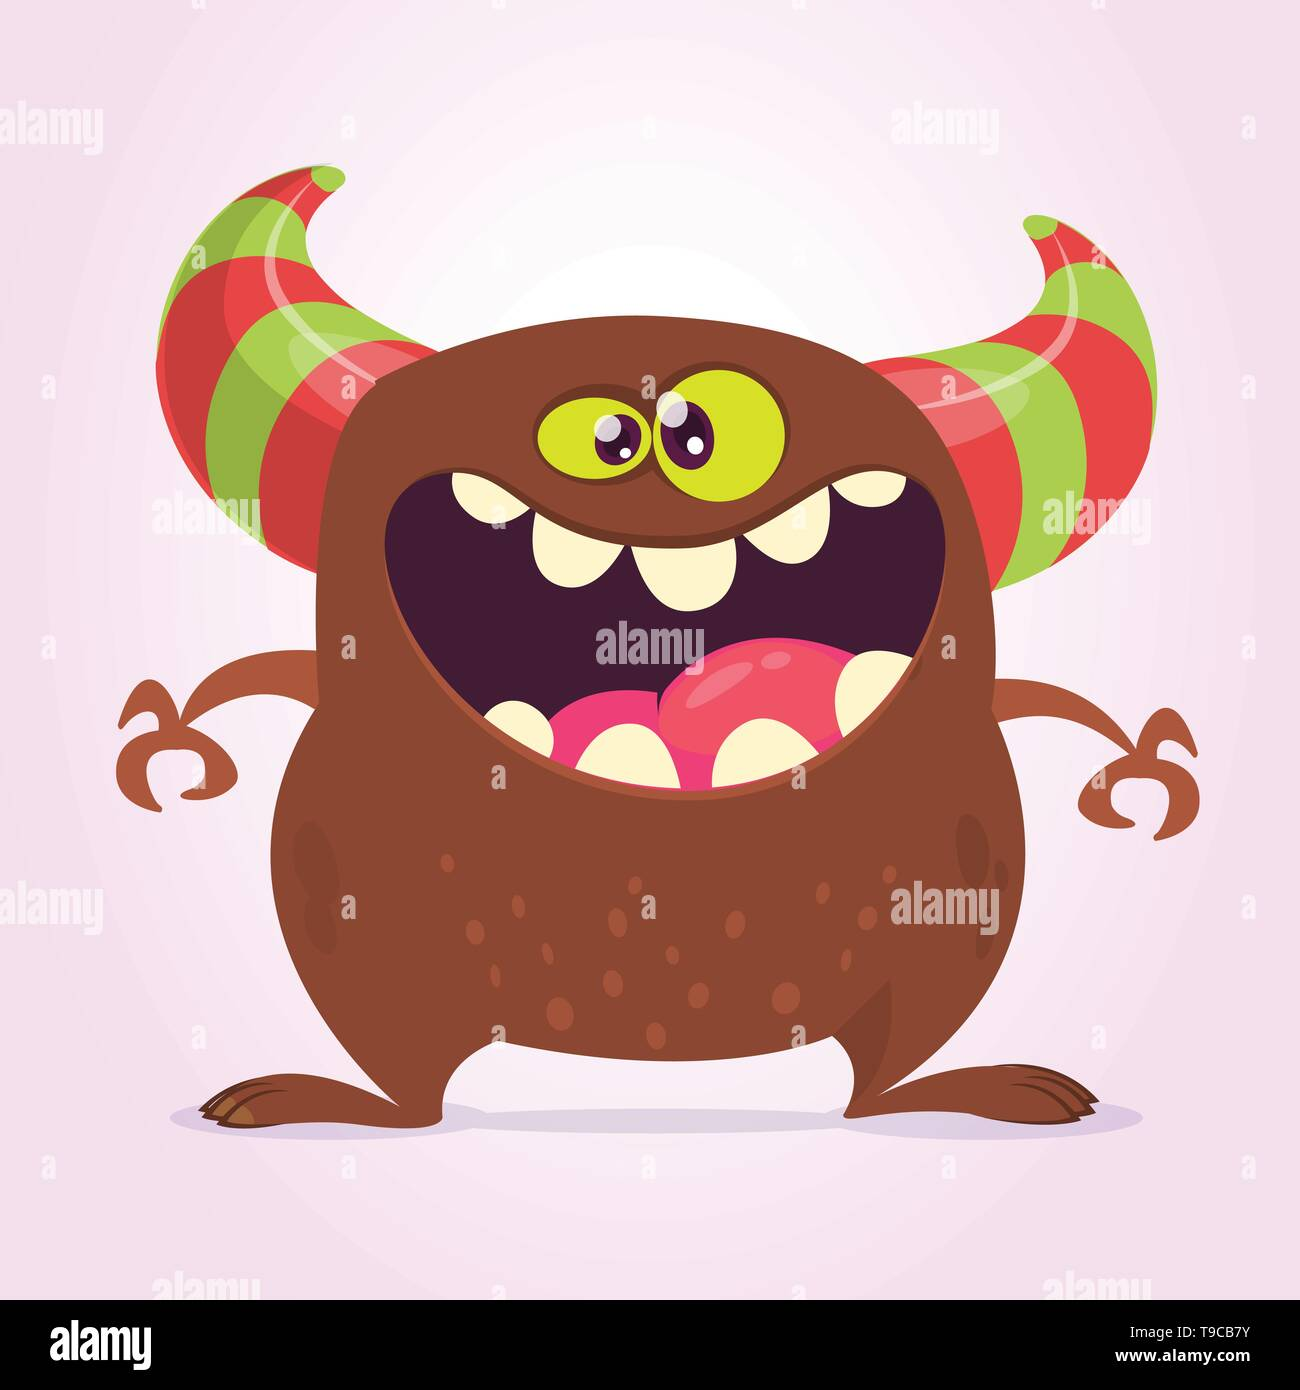 Cool cartoon monster with horns. Vector brown monster illustration. Halloween design - Stock Image